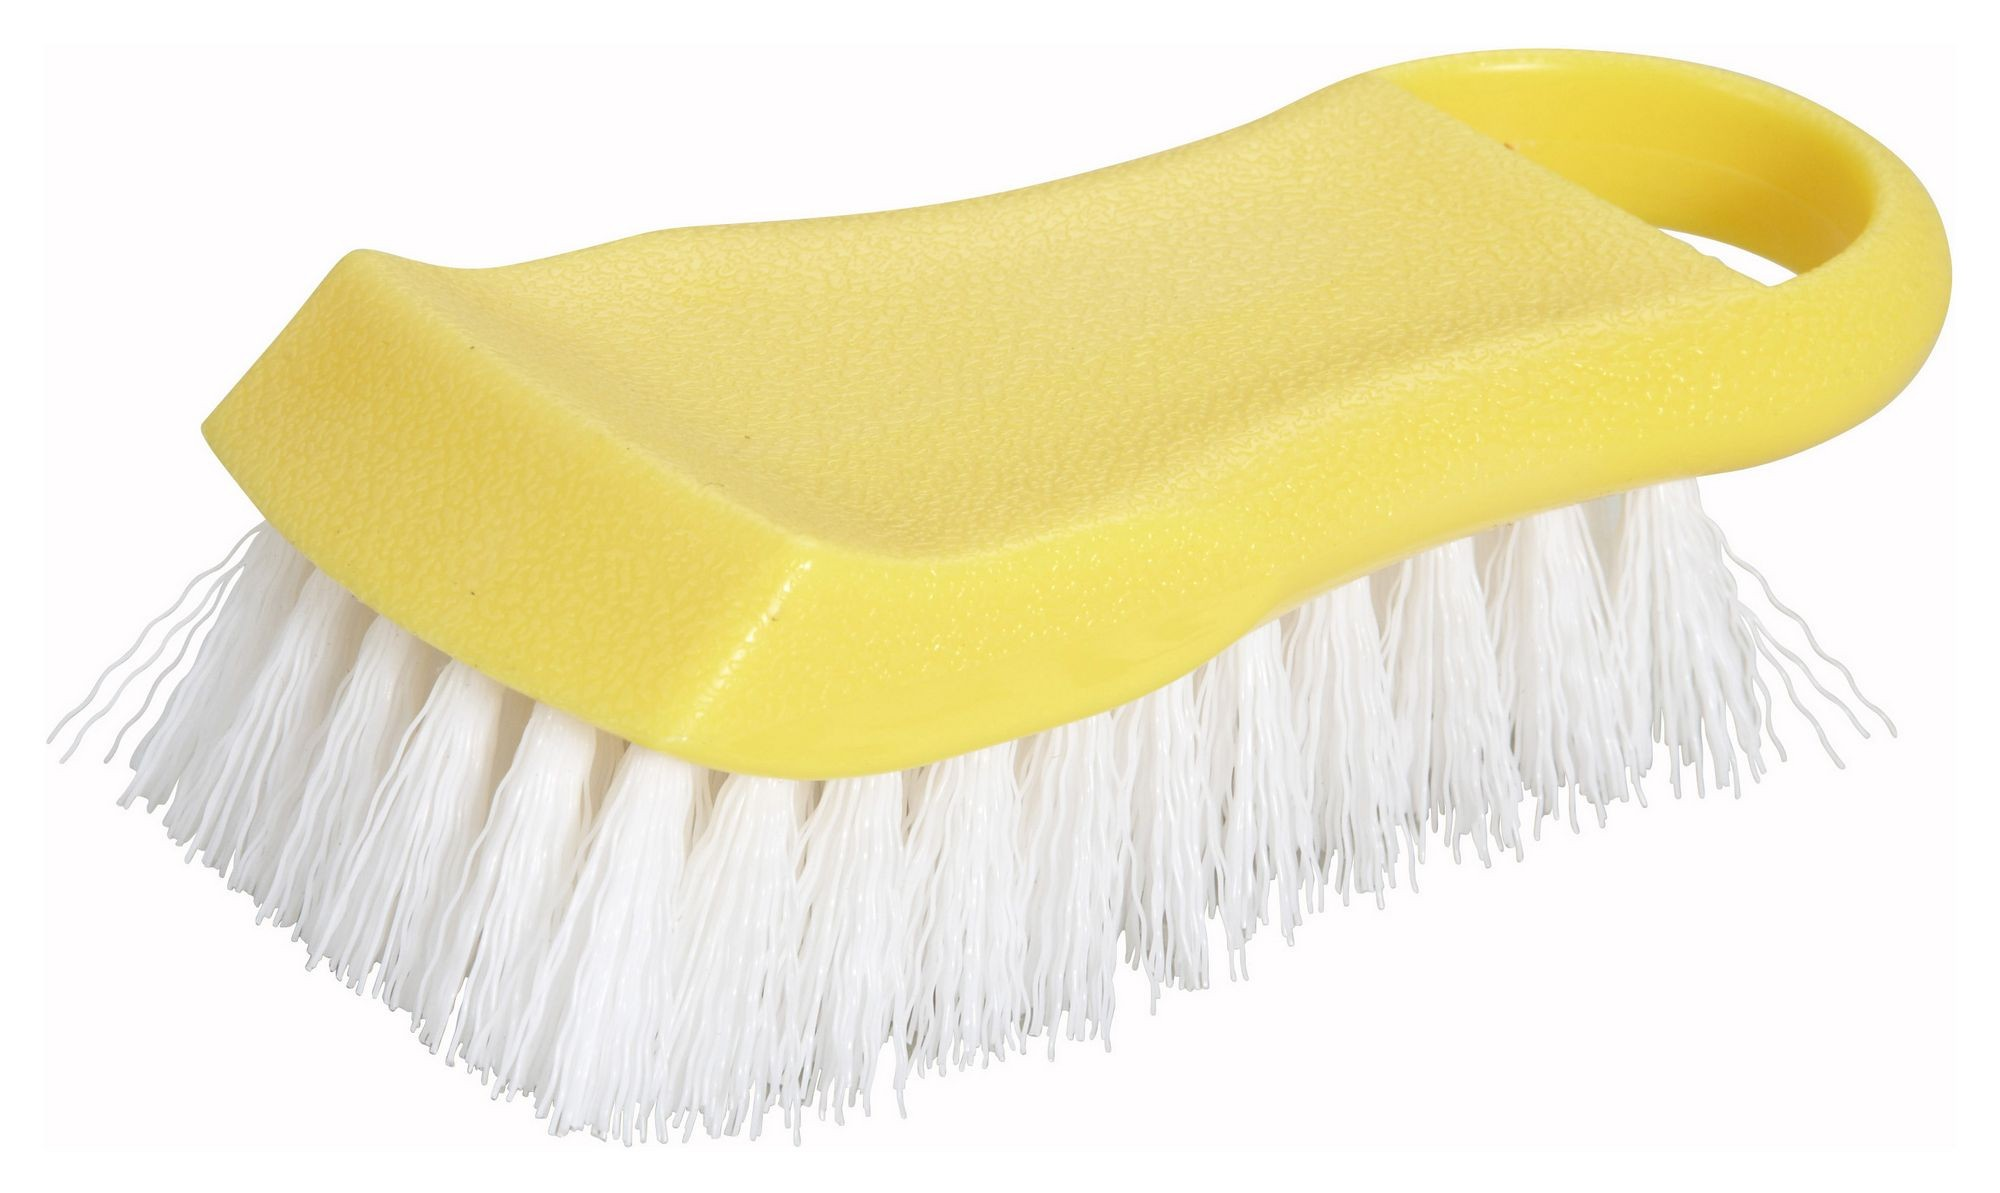 Winco CBR-YL Yellow Cutting Board Brush